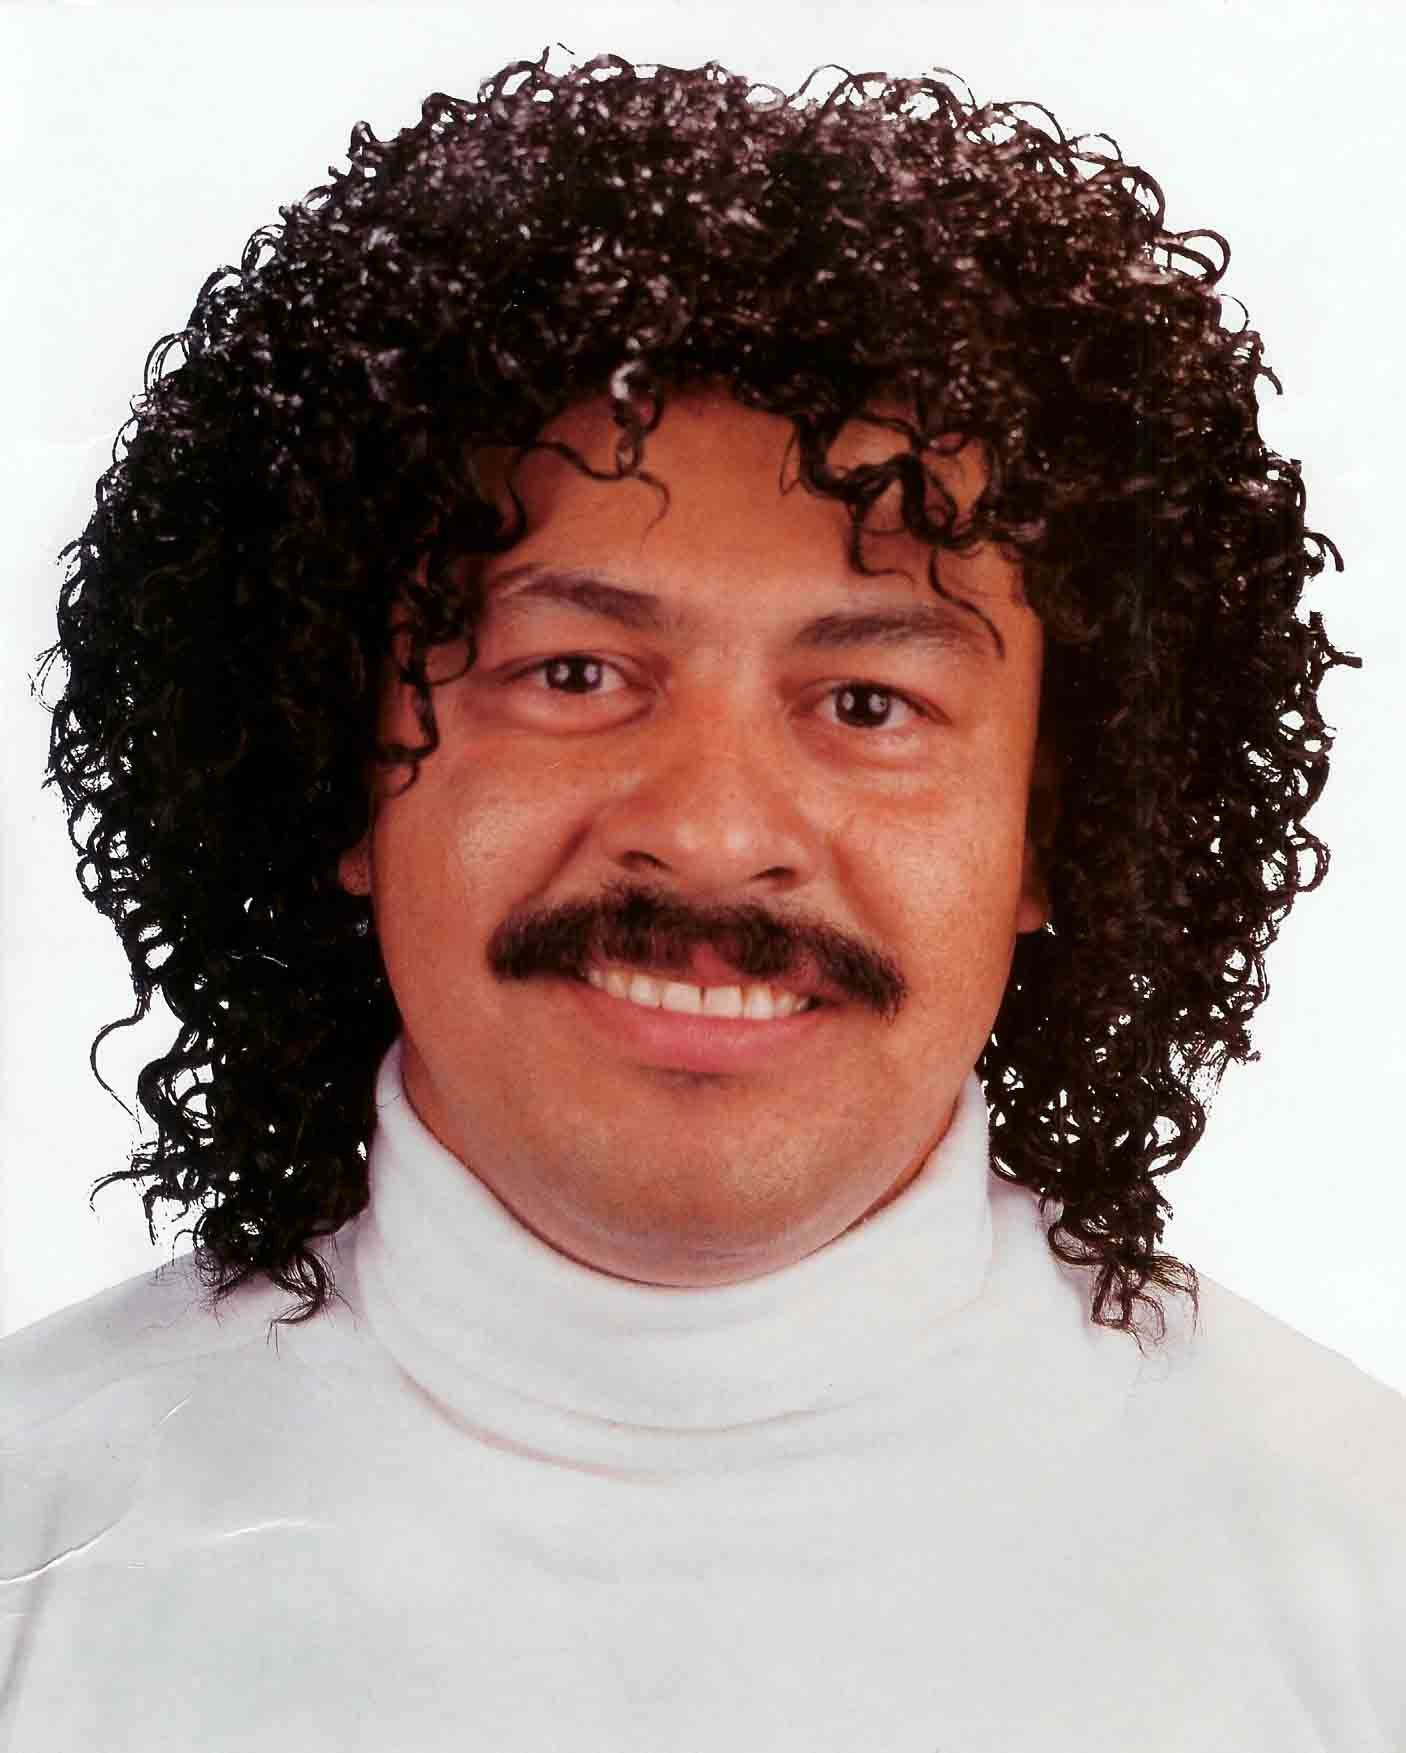 80s Hairstyles Male Toe Lionel Richie Jheri Curl Hairstyle Celebrity Hair Styles Jheri Curl Cool Hairstyles Curled Hairstyles